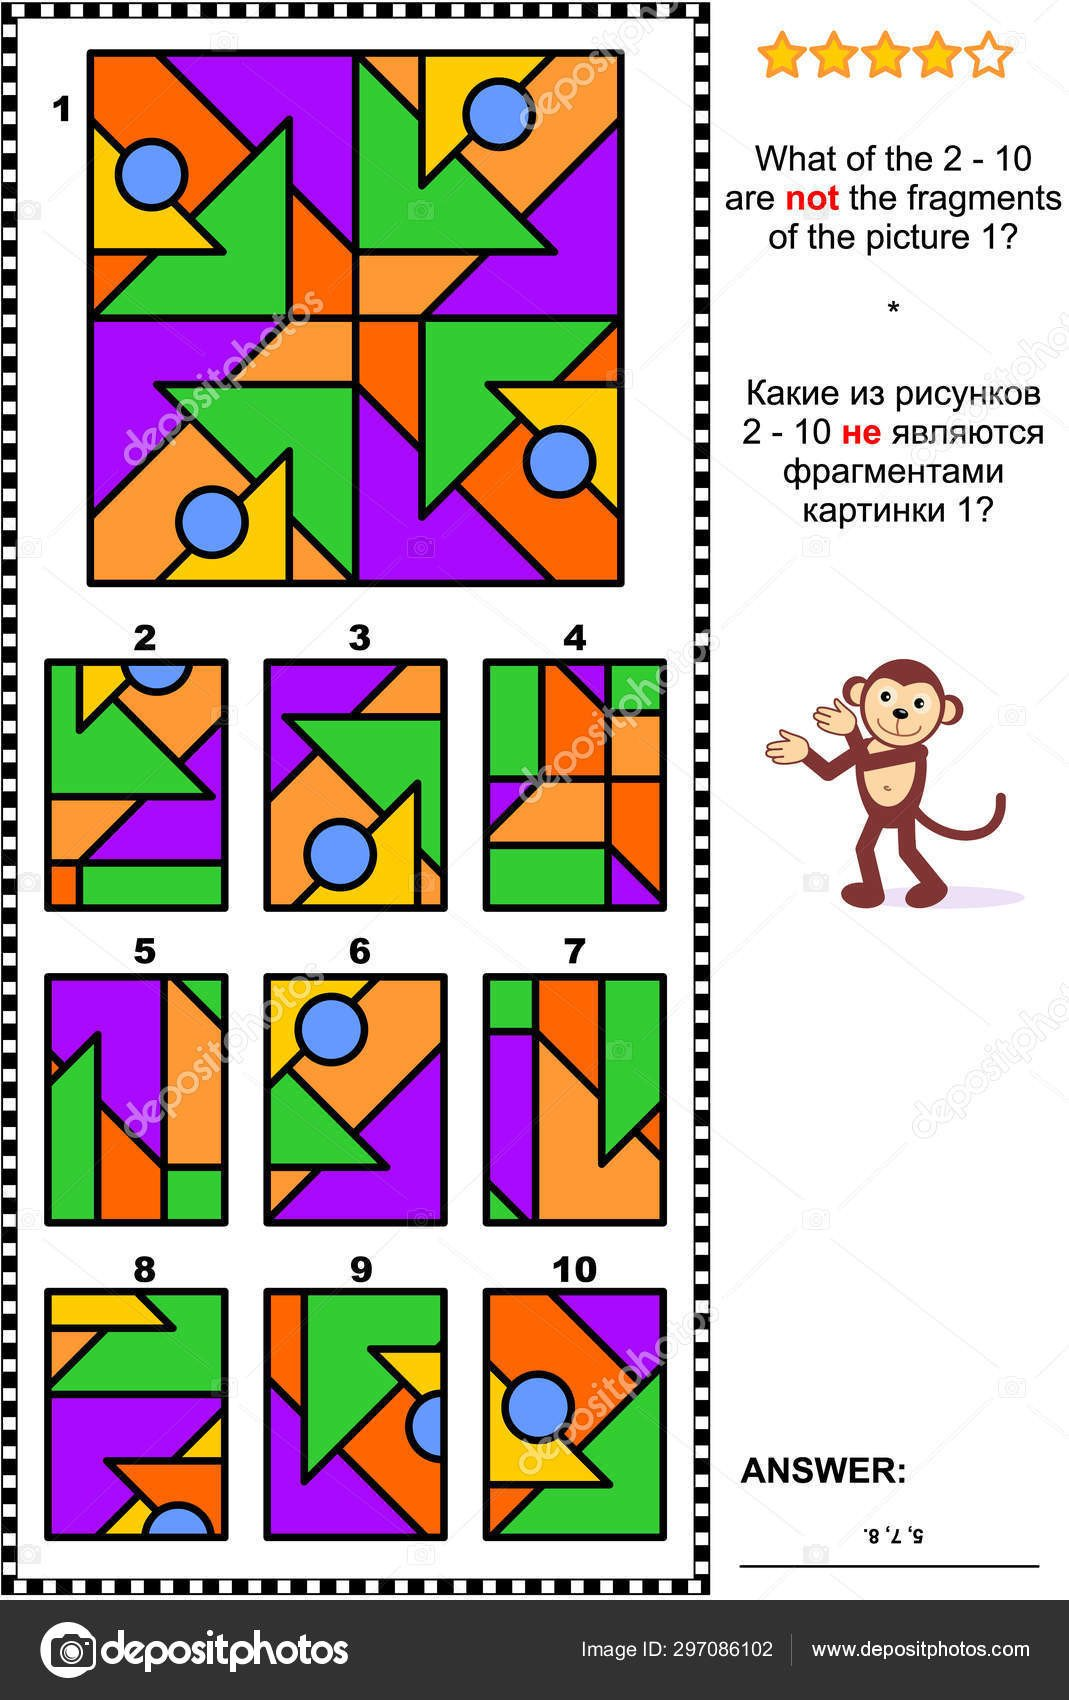 Spatial Reasoning Worksheets Iq Memory and Spatial Reasoning Training Abstract Visual Puzzle What Of the 2 10 are Not the Fragments Of the Picture 1 Answer Included